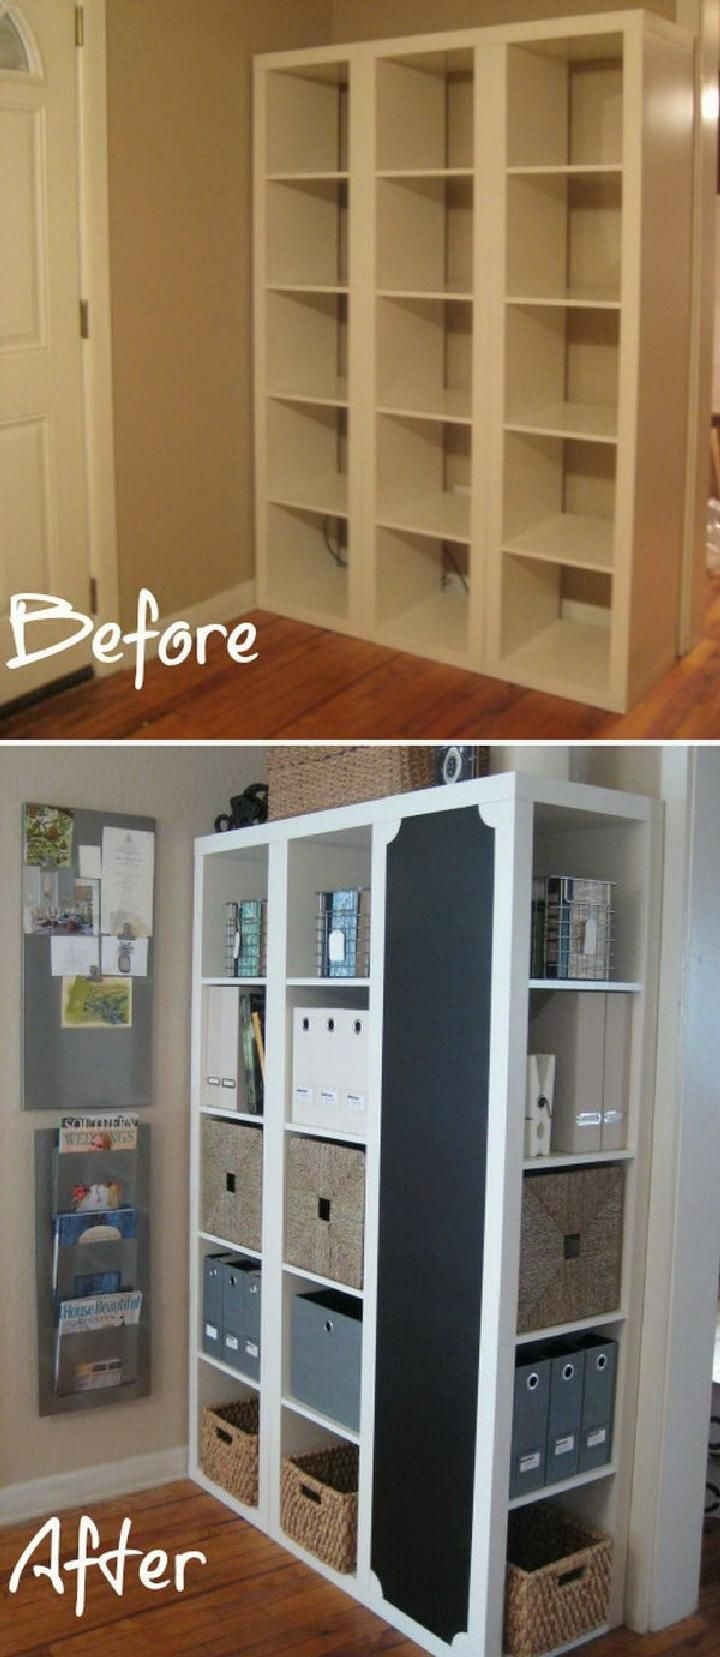 Diy Ikea Kallax Command Center With Storage And Chalkboard 60 Shelf Hacks Or Expedit Crafts